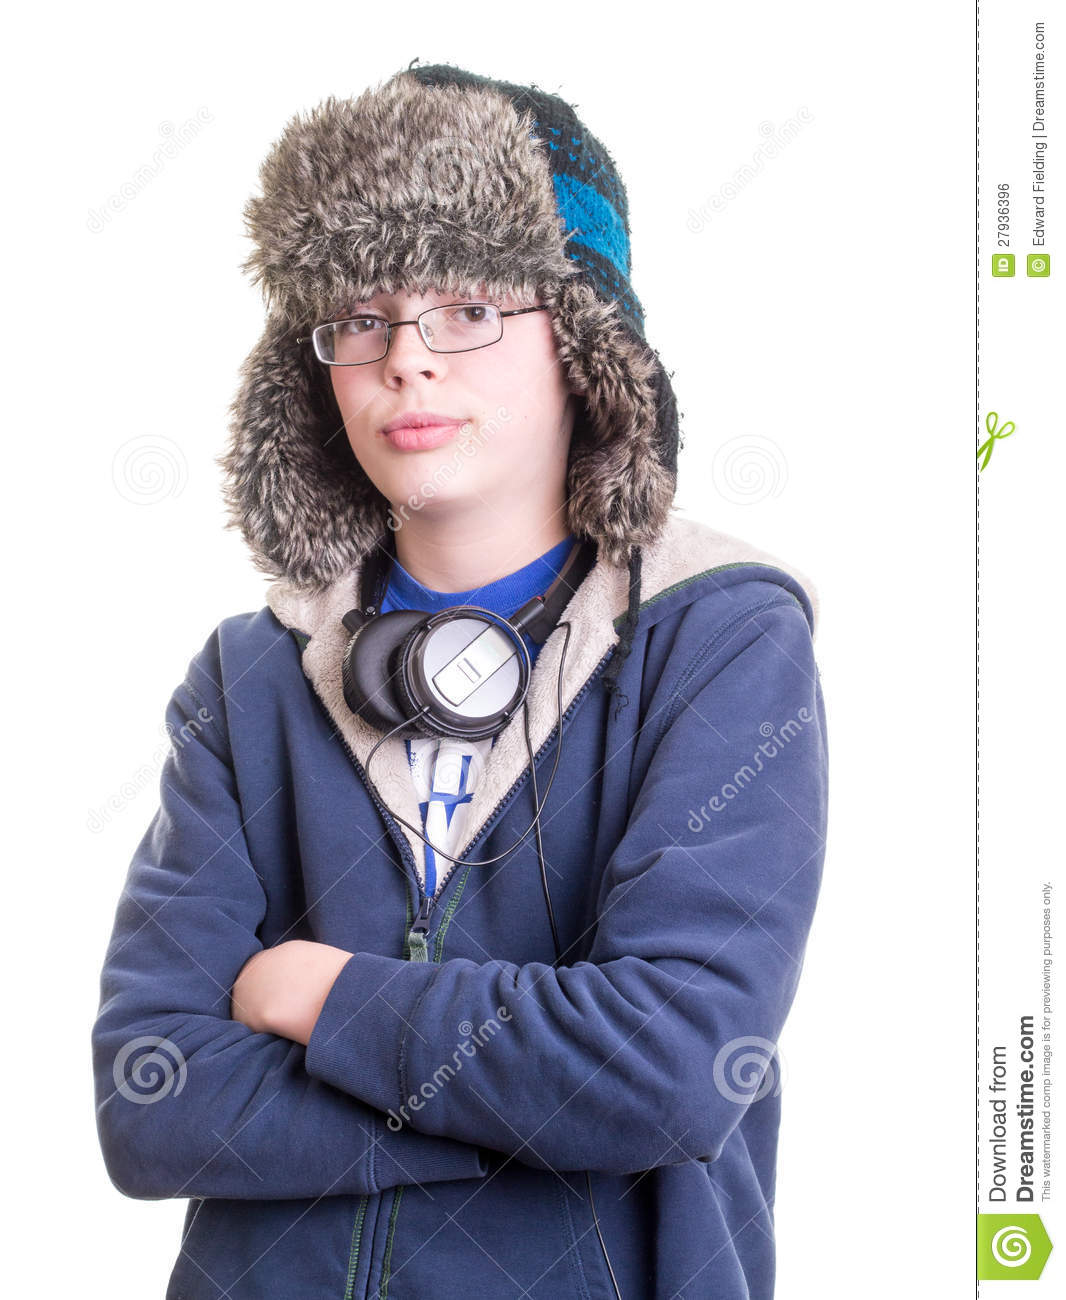 Cool Teen with Trapper Hat stock photo. Image of music - 27936396 9fd93978258